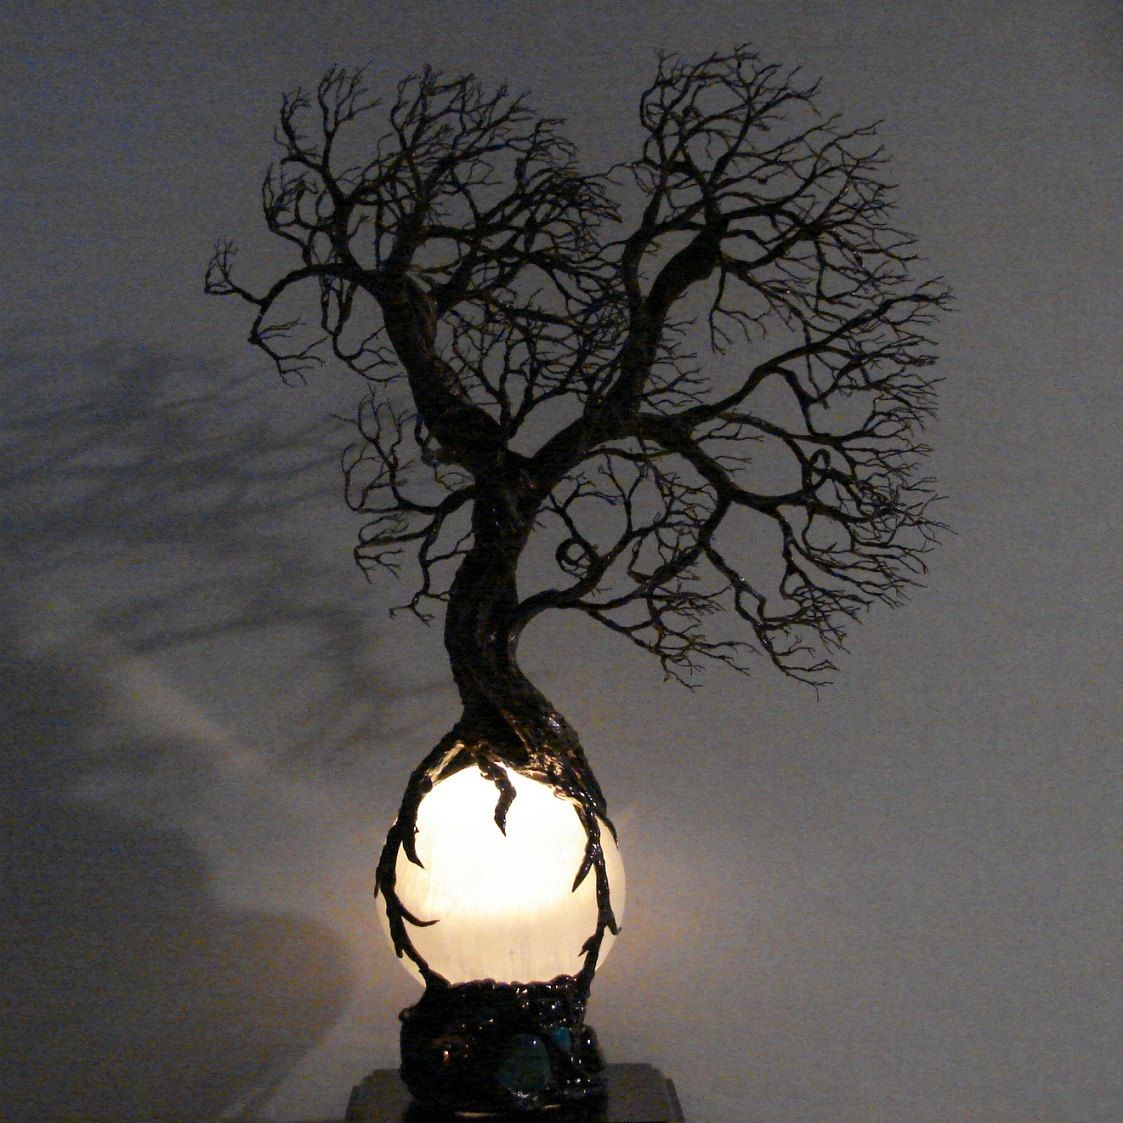 Full moon rising wire tree of life wind spirits sculpture for How to make a wire tree of life sculpture